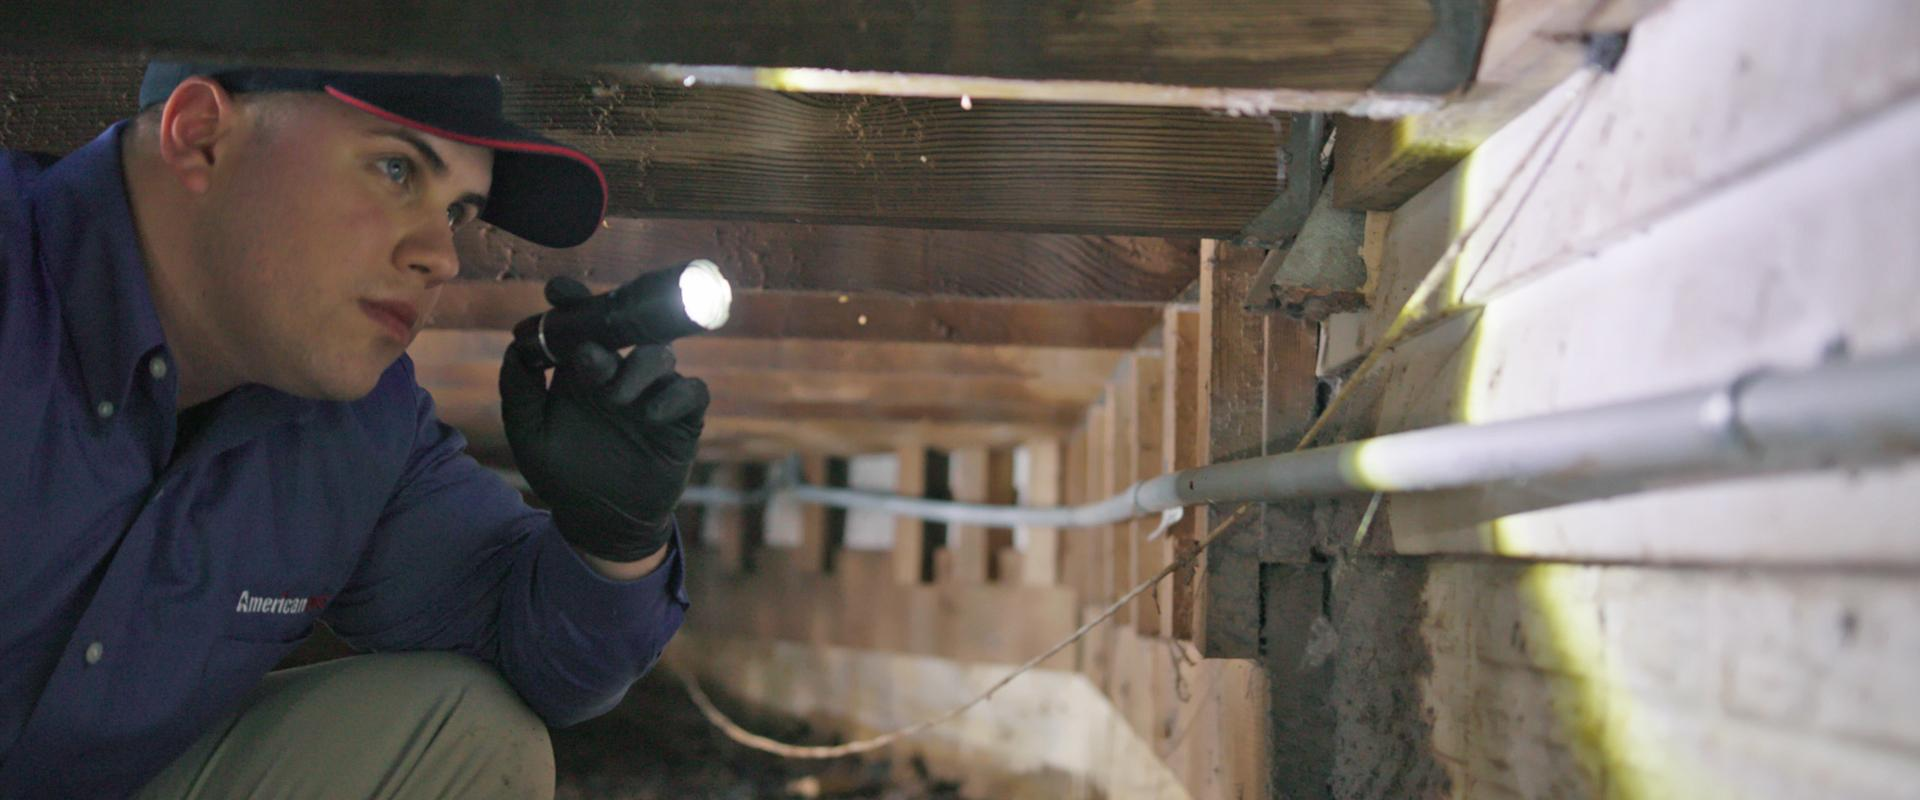 tech inspecting crawl space under home